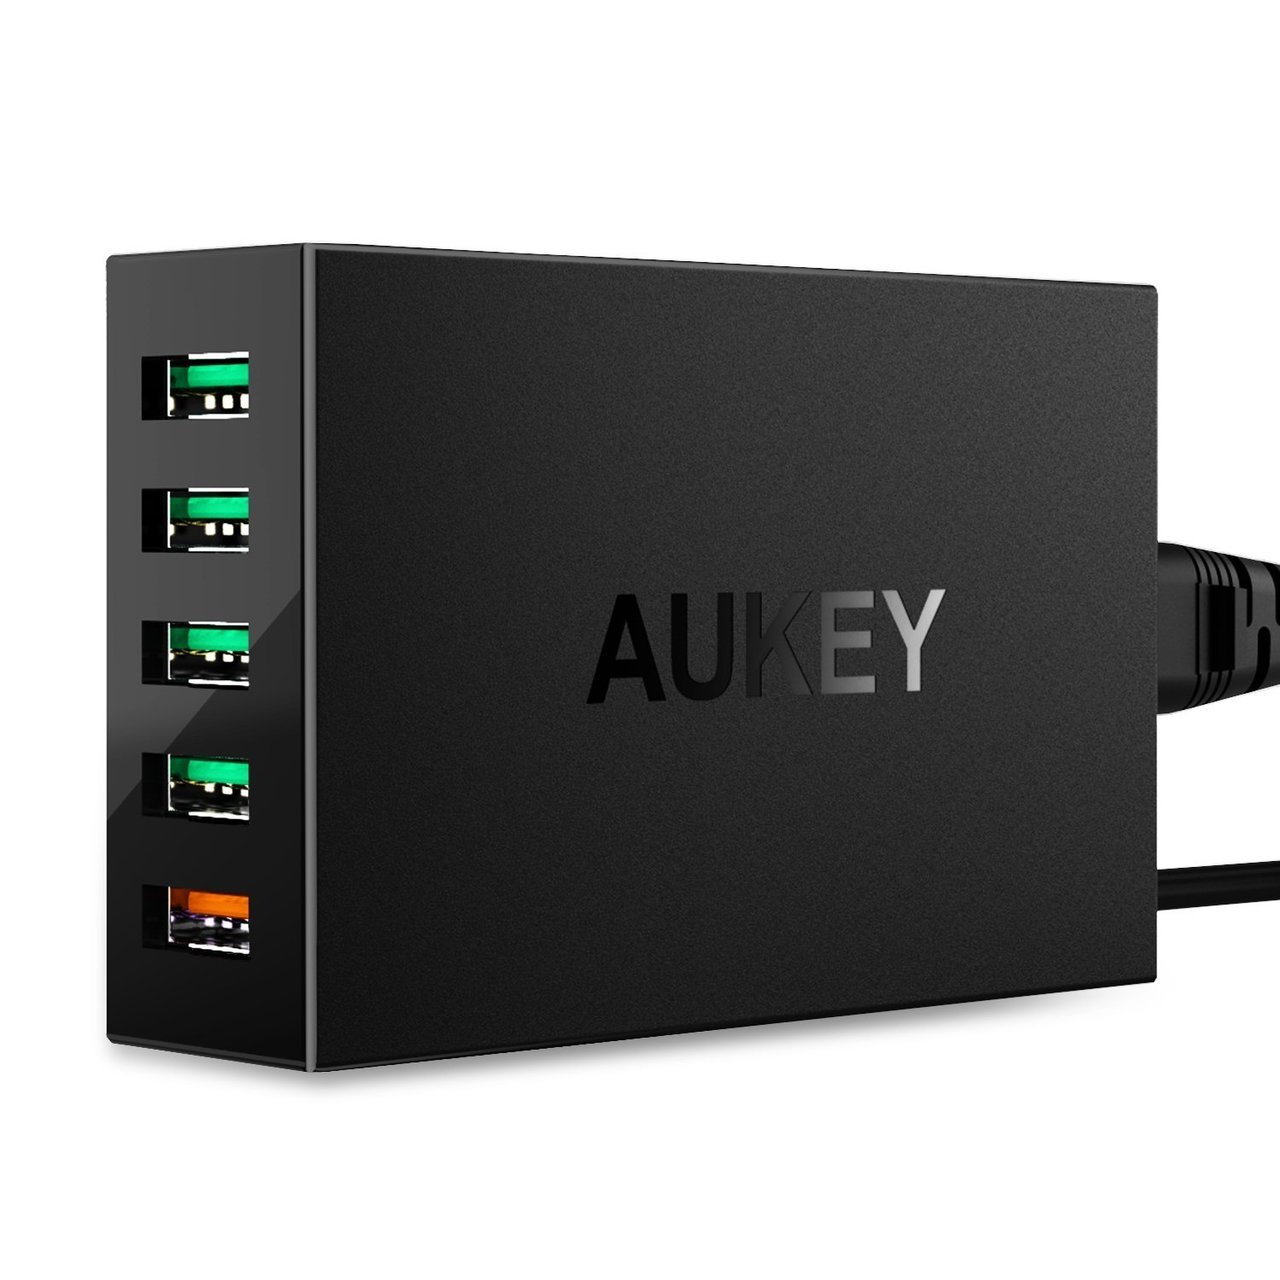 AUKEY 5-Port 54W Desktop Charger with QC 3.0 - Black - PA-T15